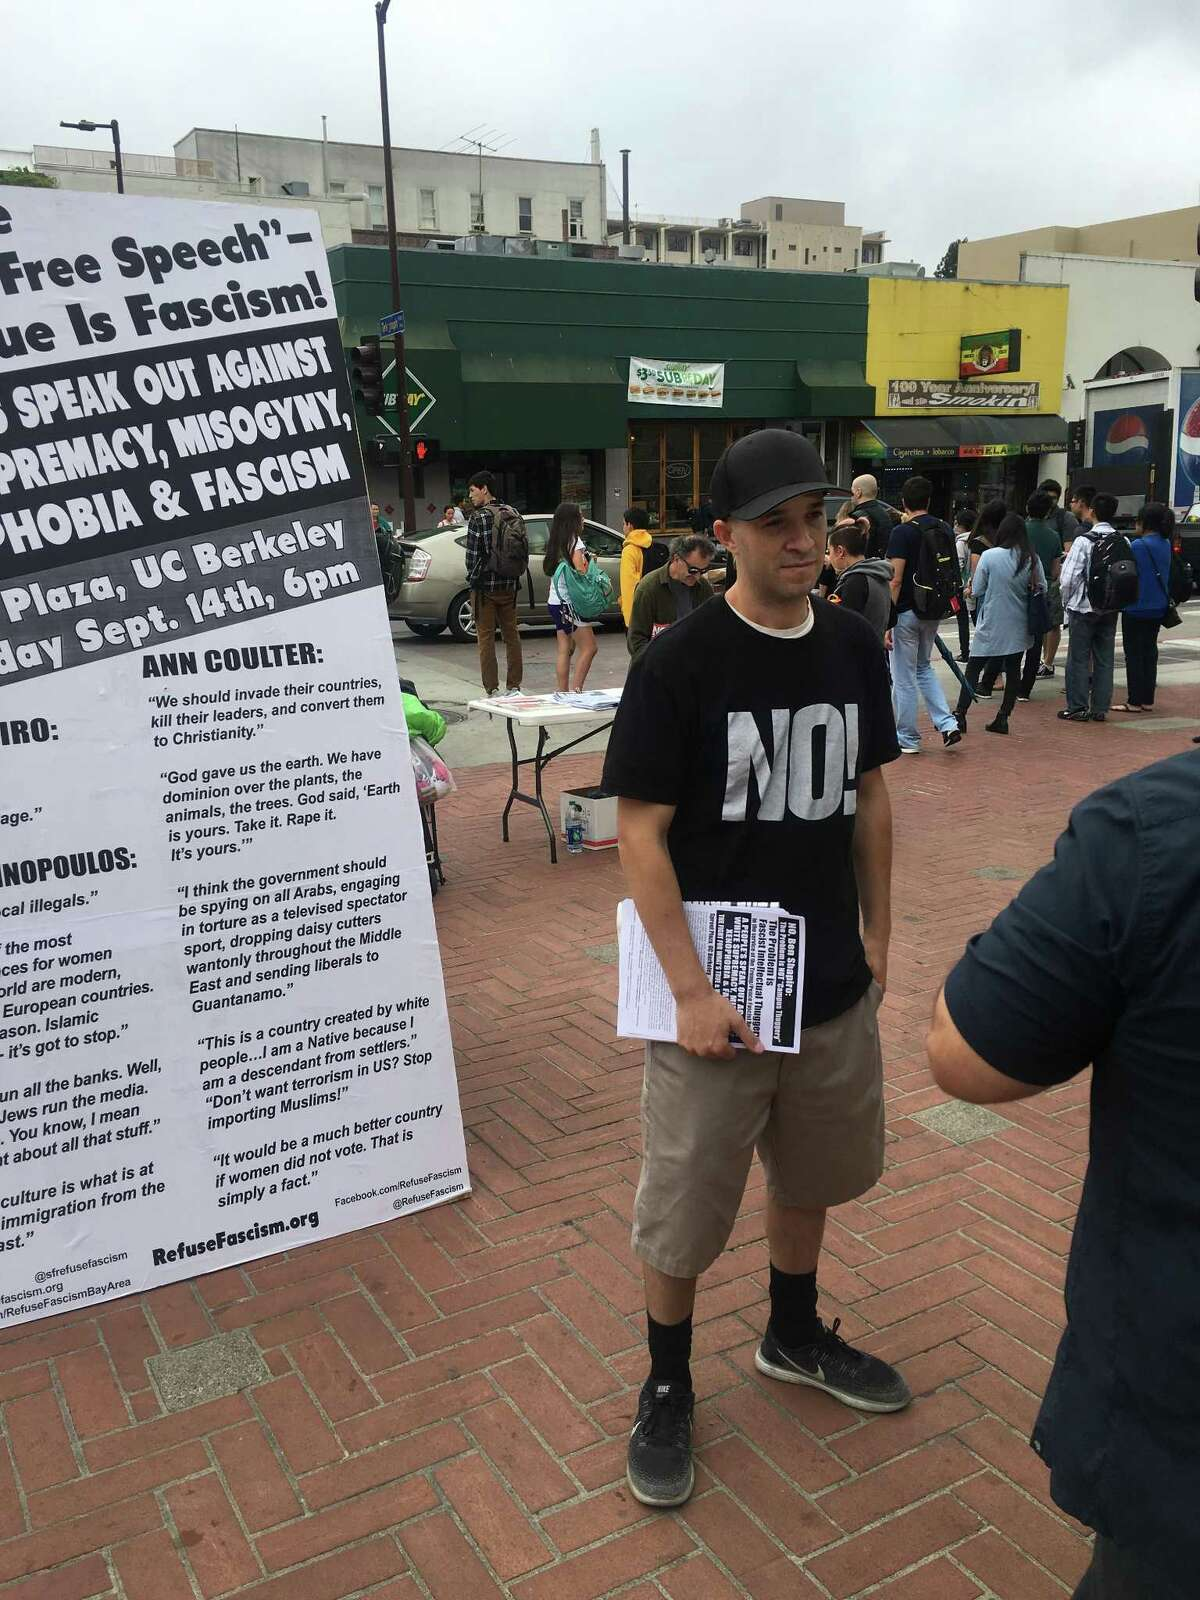 An unidentified critic of Ben Shapiro passes out posters s a day before the conservative commentator is scheduled to speak on campus on Wednesday September 13, 2017 in Berkeley.